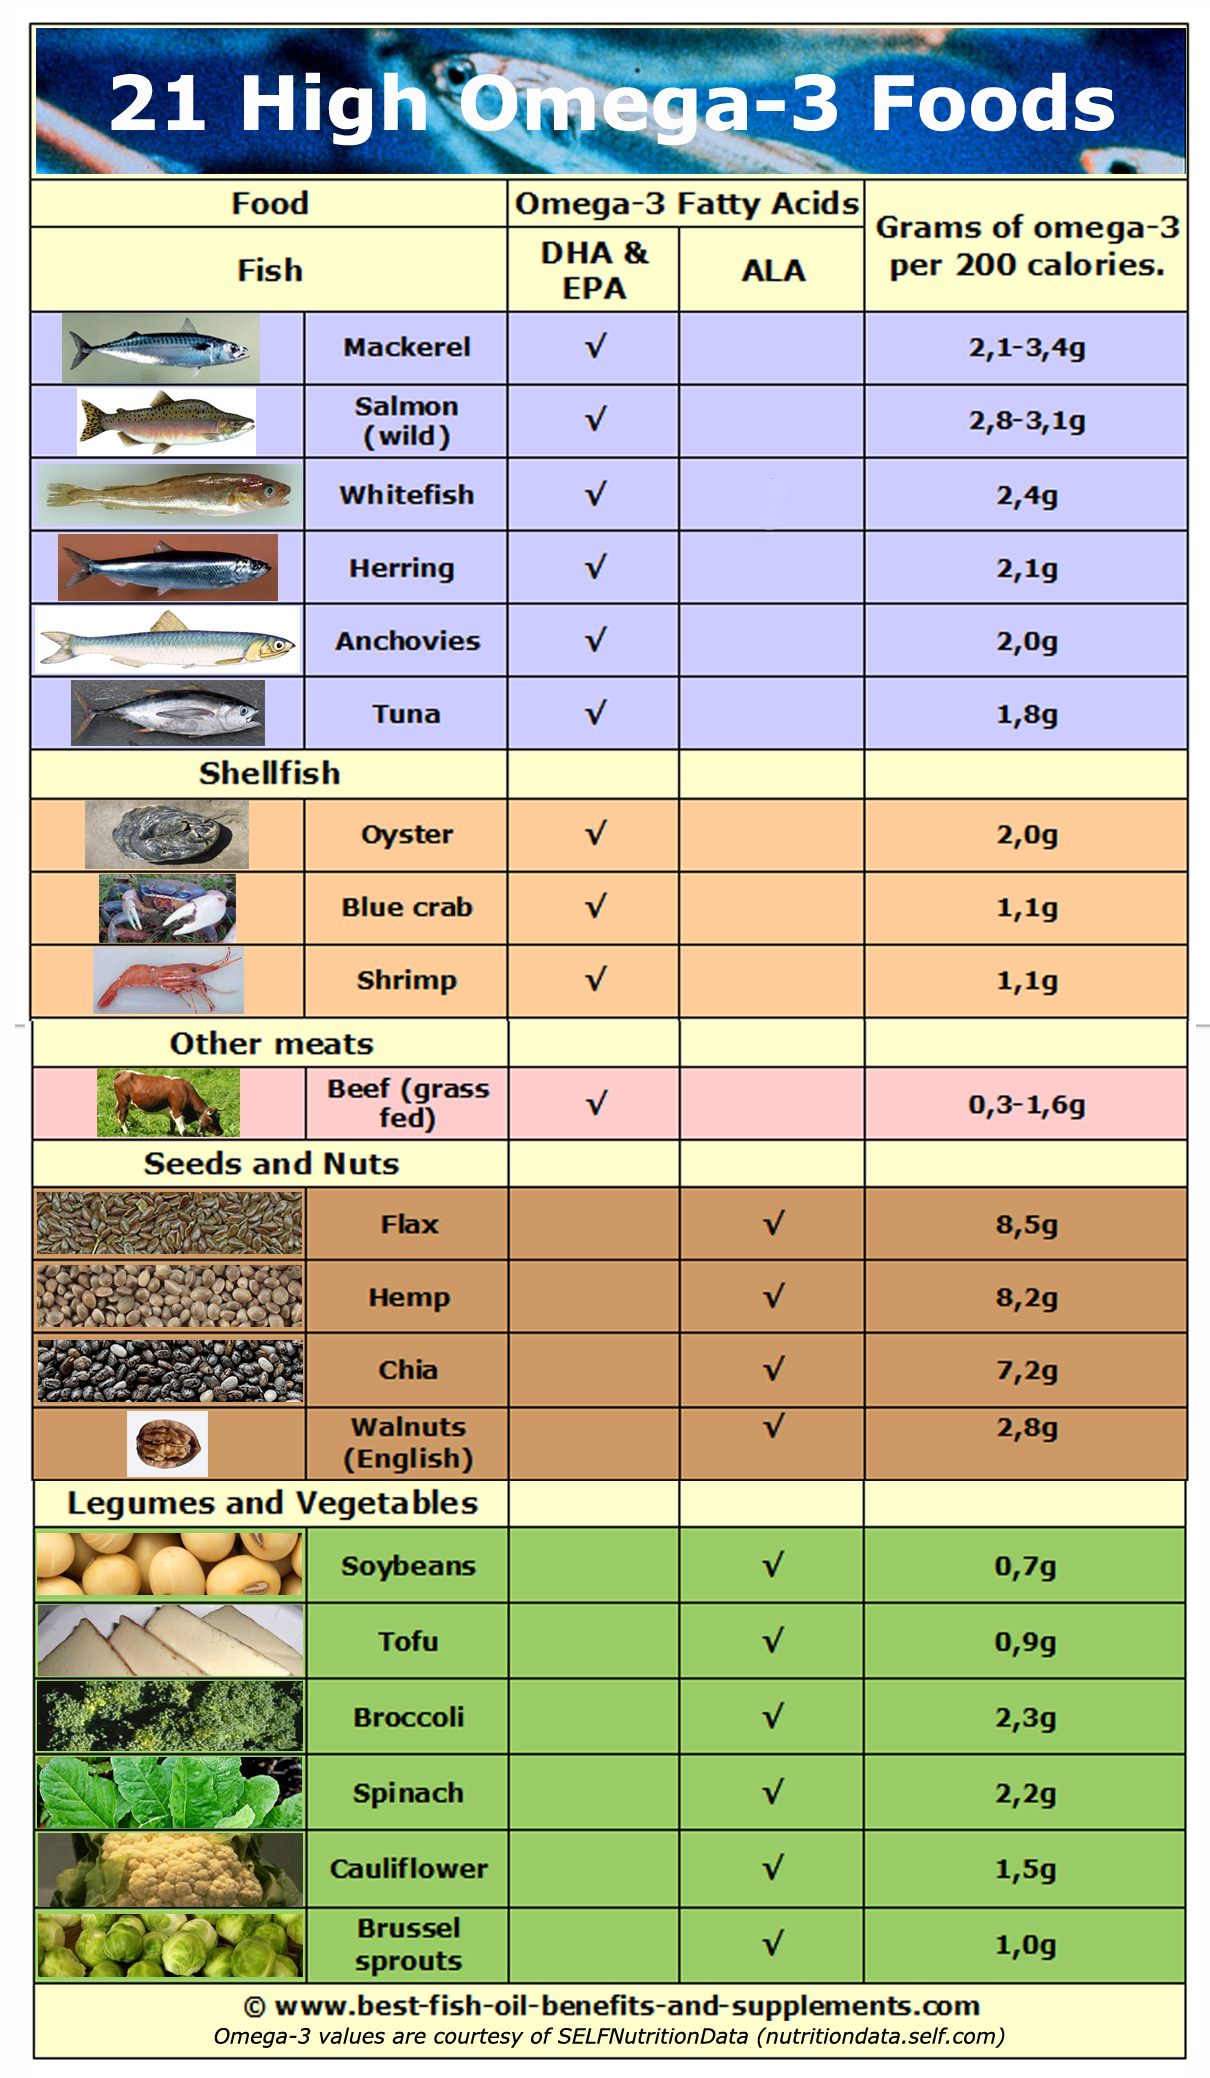 21 rich omega-3 foods chart showing grams of omega-3 per 200 calorie serving.